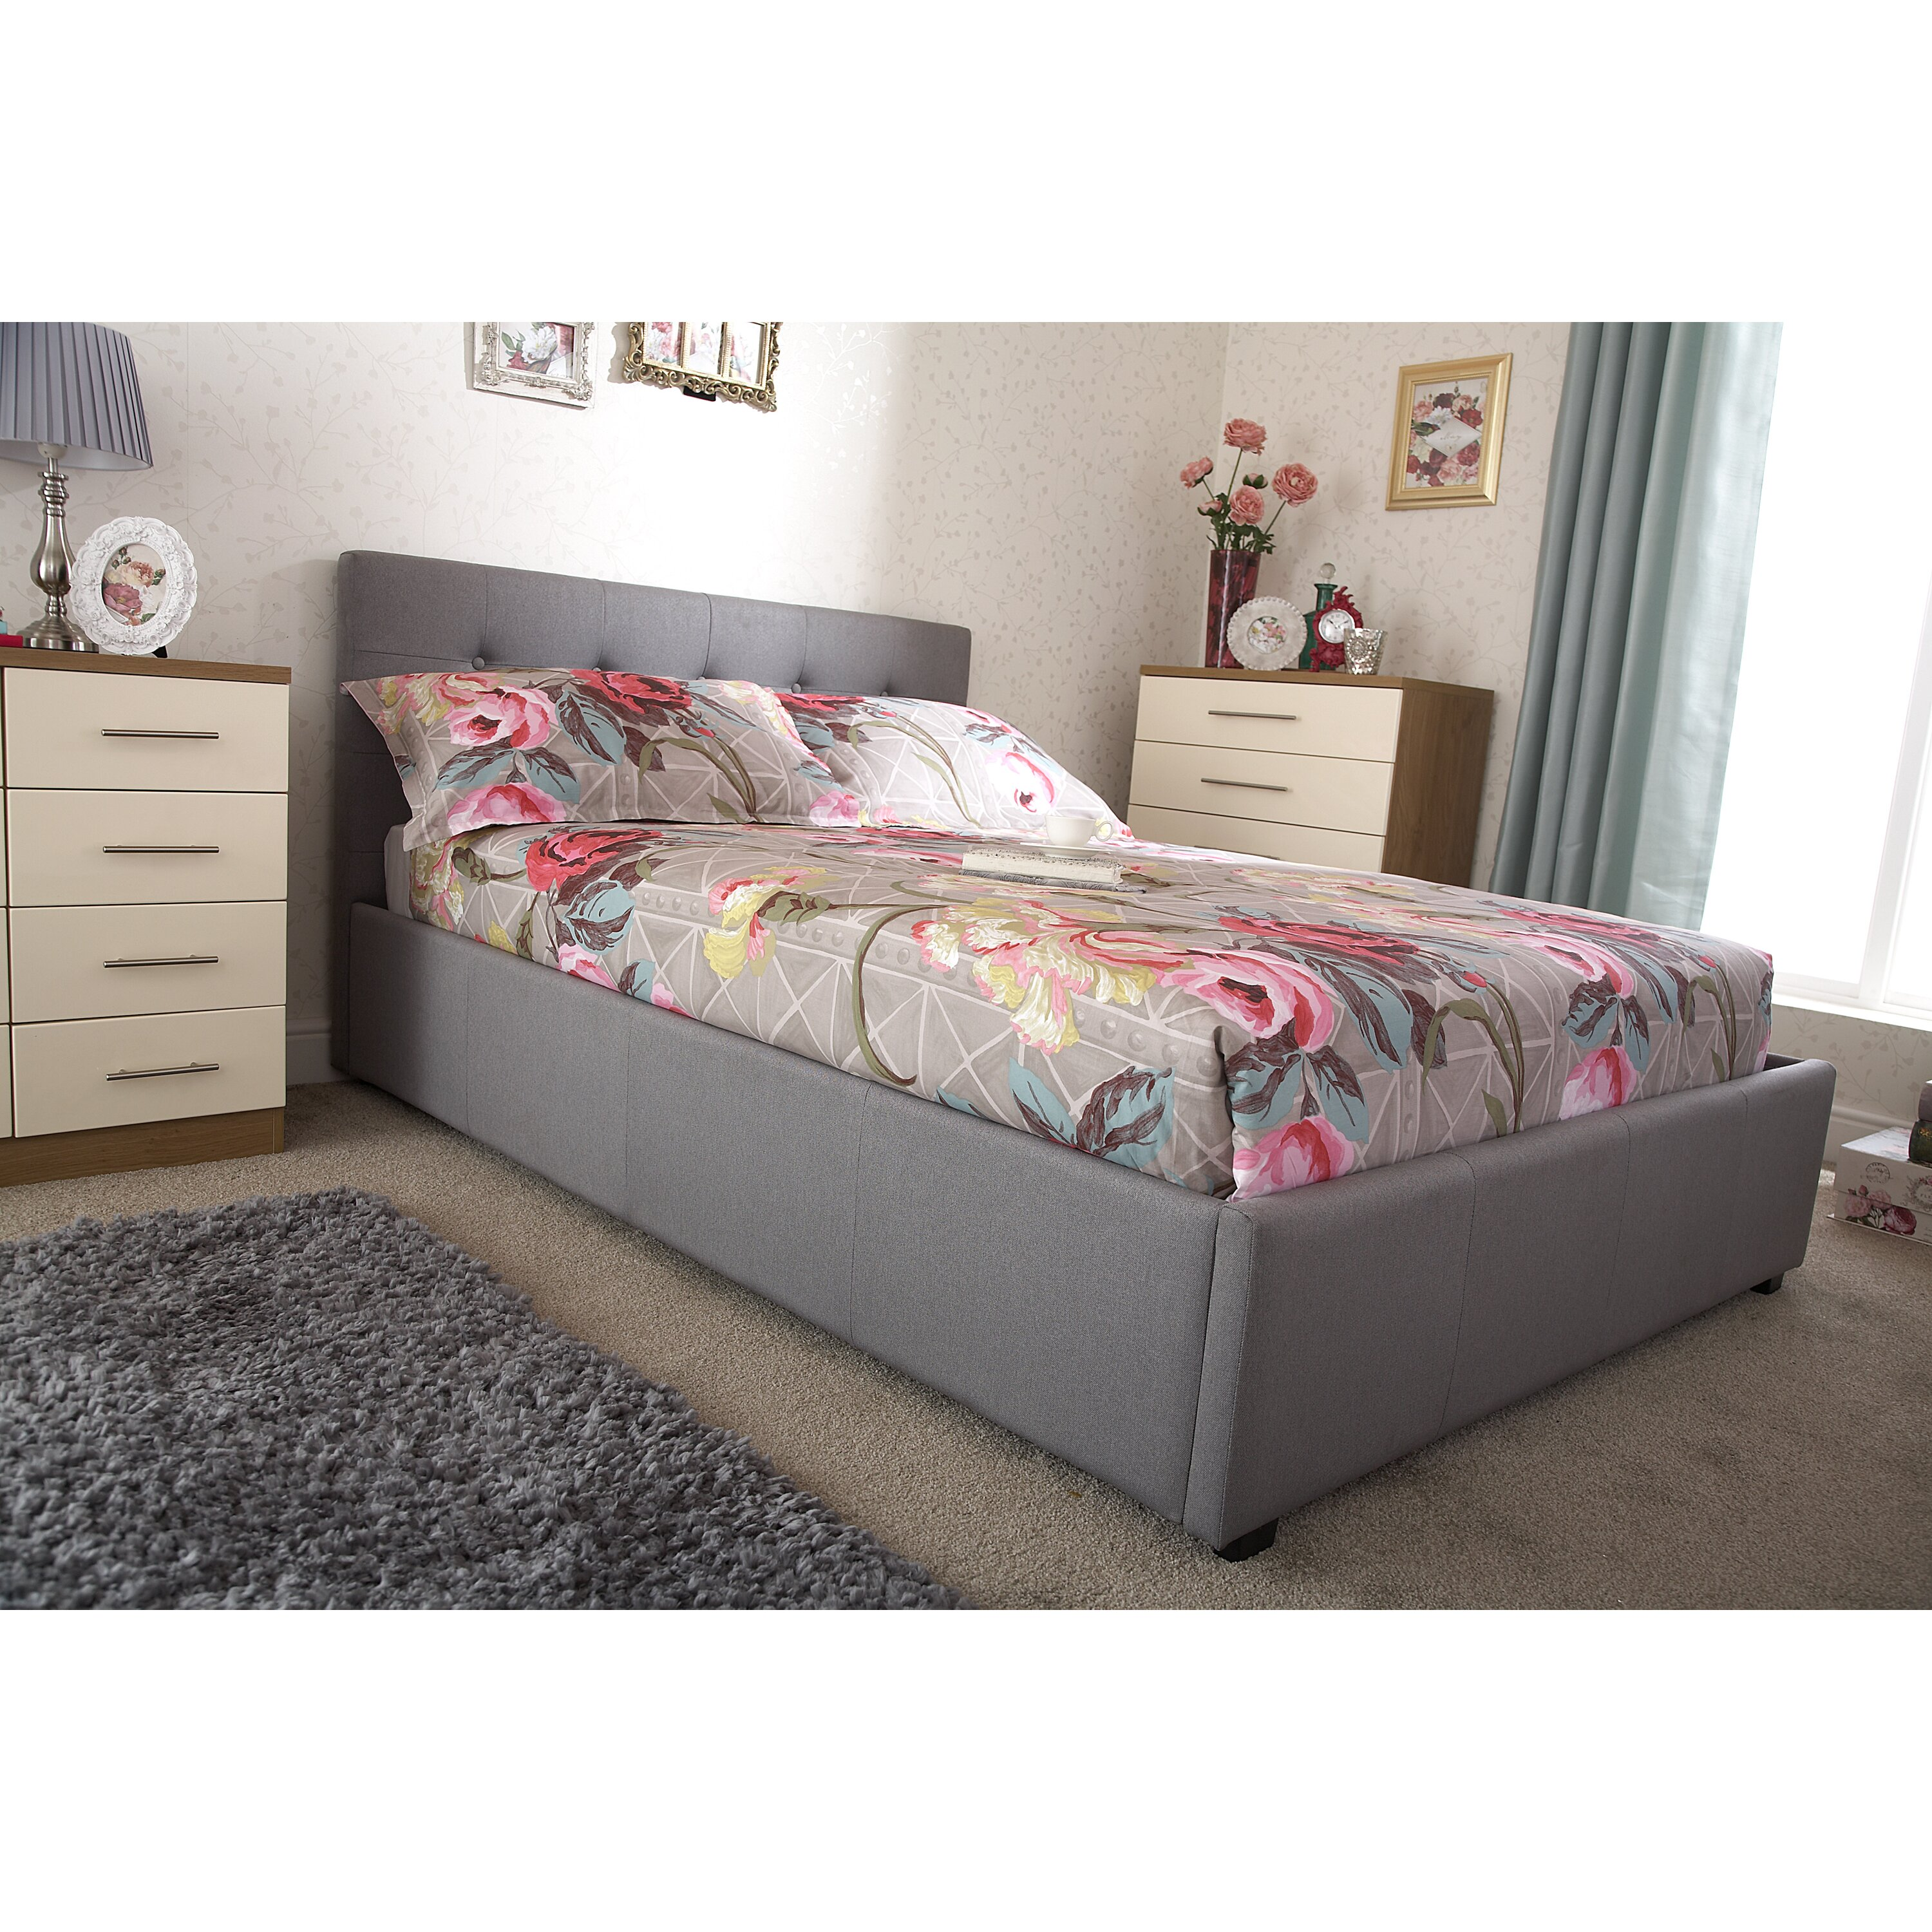 Ottoman Bedroom Mercury Row Adhafera Upholstered Ottoman Bed Frame Reviews